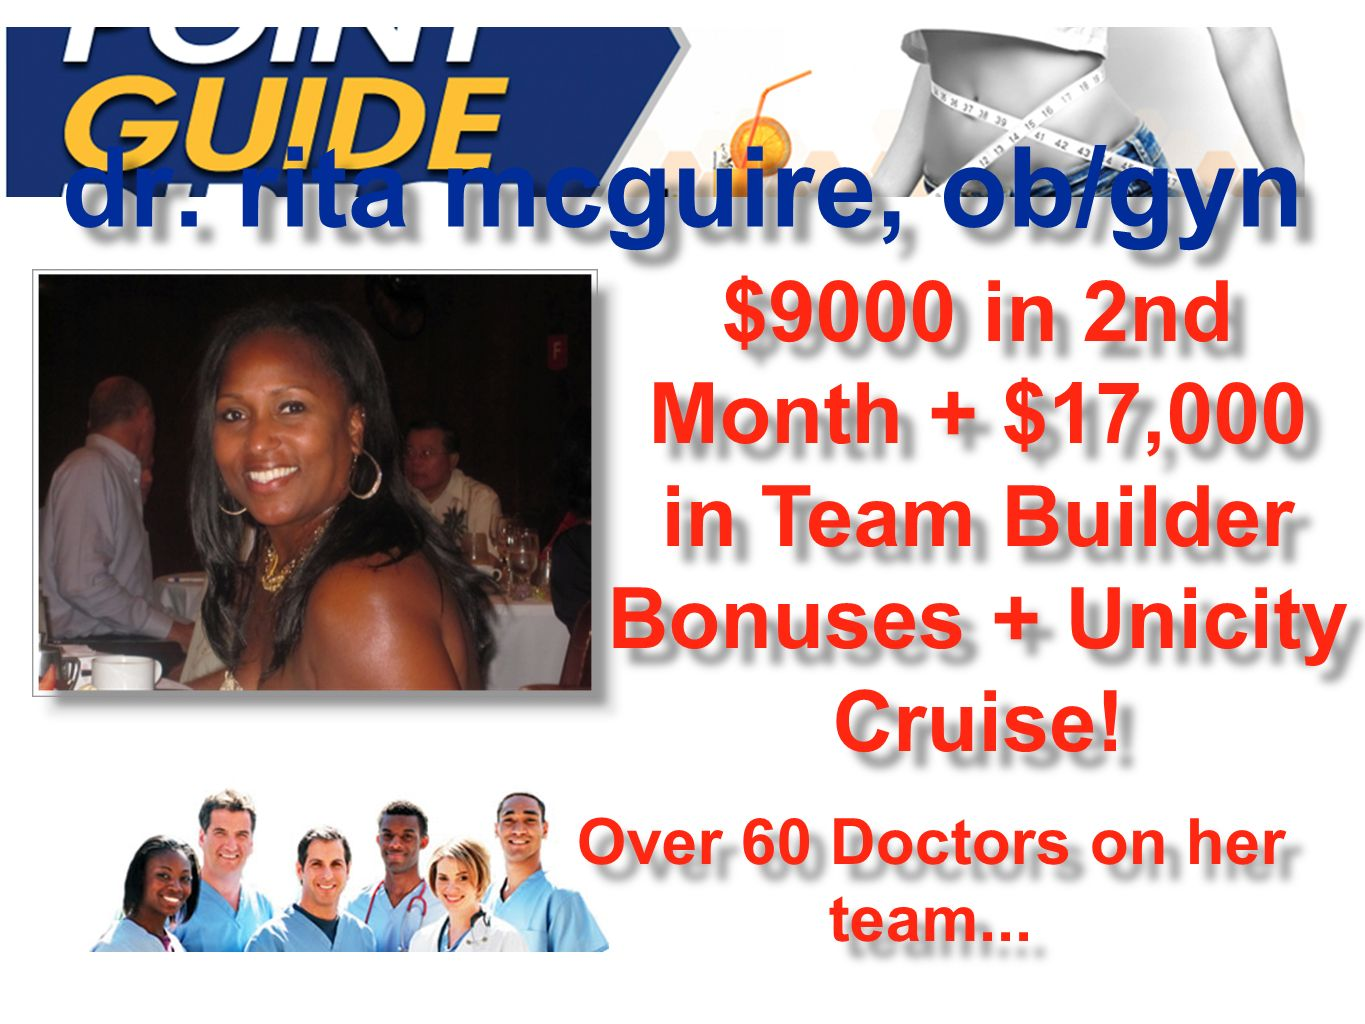 dr. rita mcguire, ob/gyn $9000 in 2nd Month + $17,000 in Team Builder Bonuses + Unicity Cruise! Over 60 Doctors on her team...